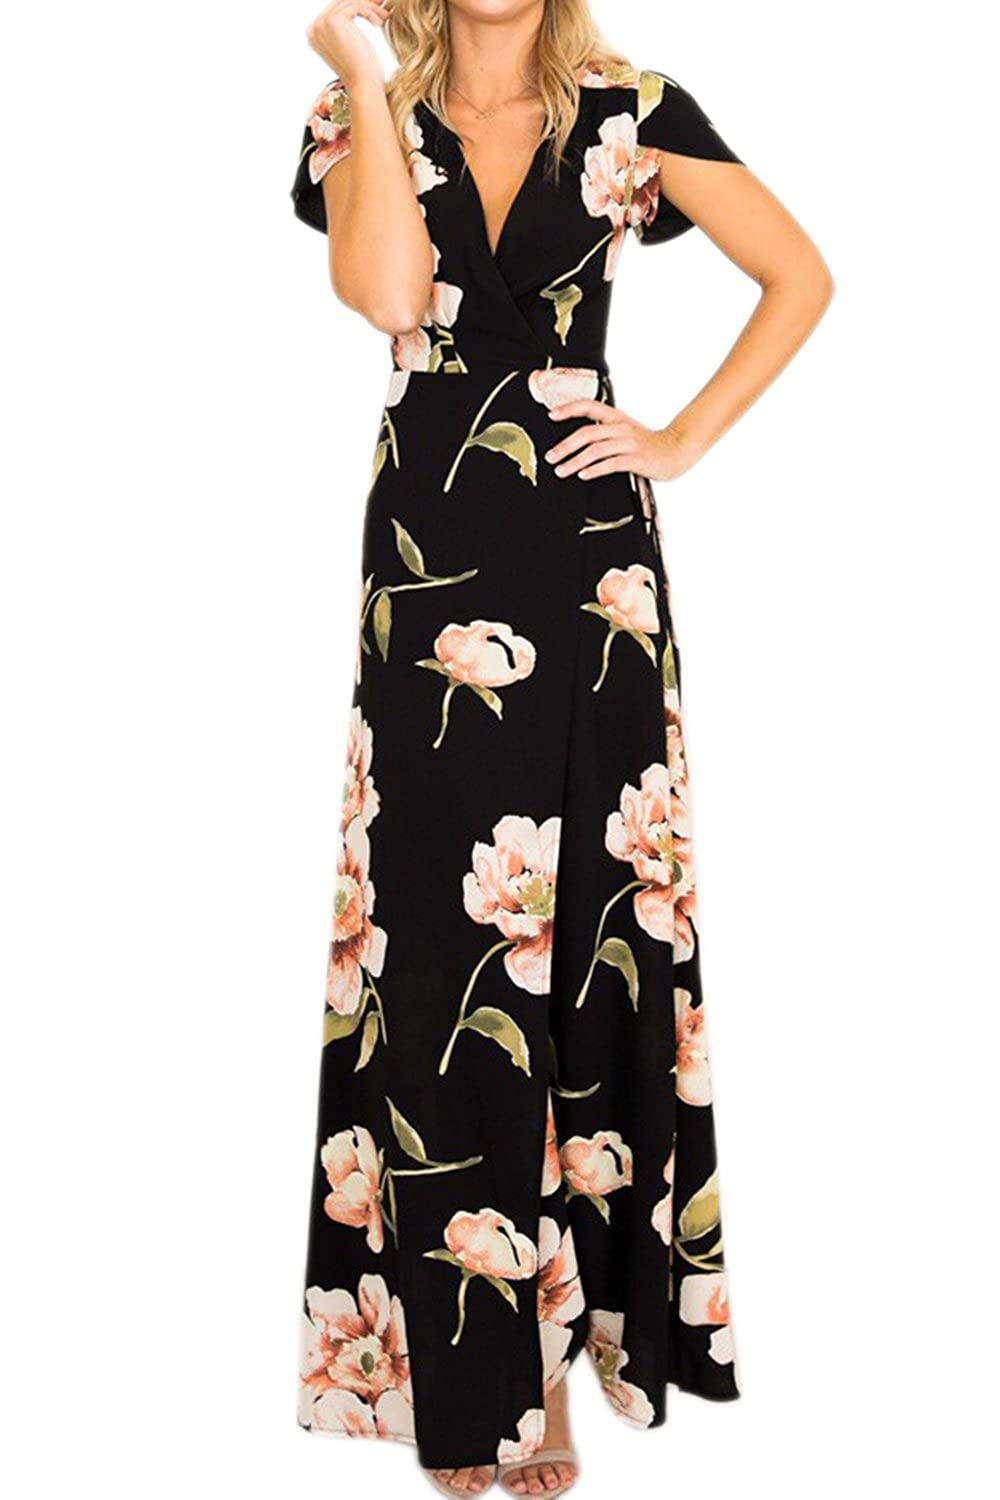 Zamtapary Womens Maxi Dress Summer Casual V Neck Wrap Floral Boho Long Beach Dresses CAVI1393